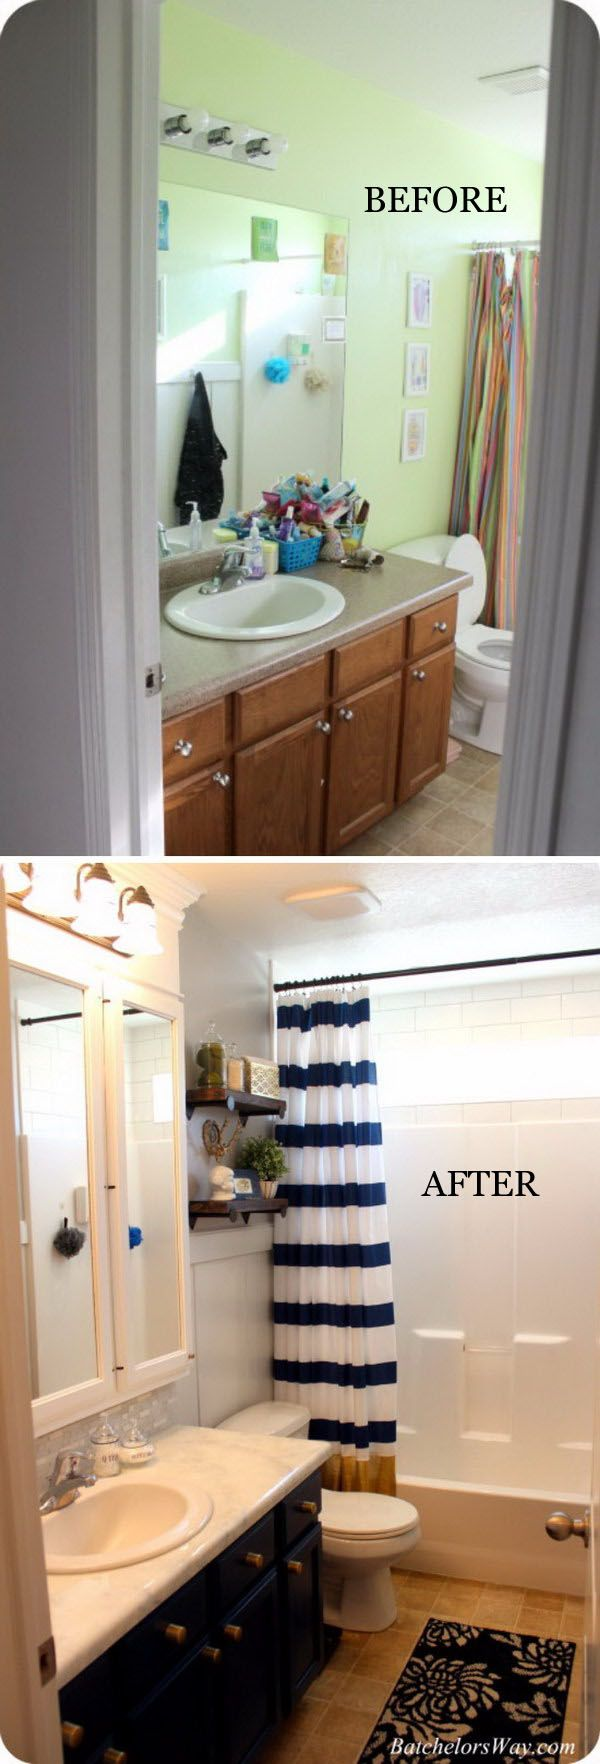 Before And After 20 Awesome Bathroom Makeovers Bathroom Hackssmall Bathroombudget